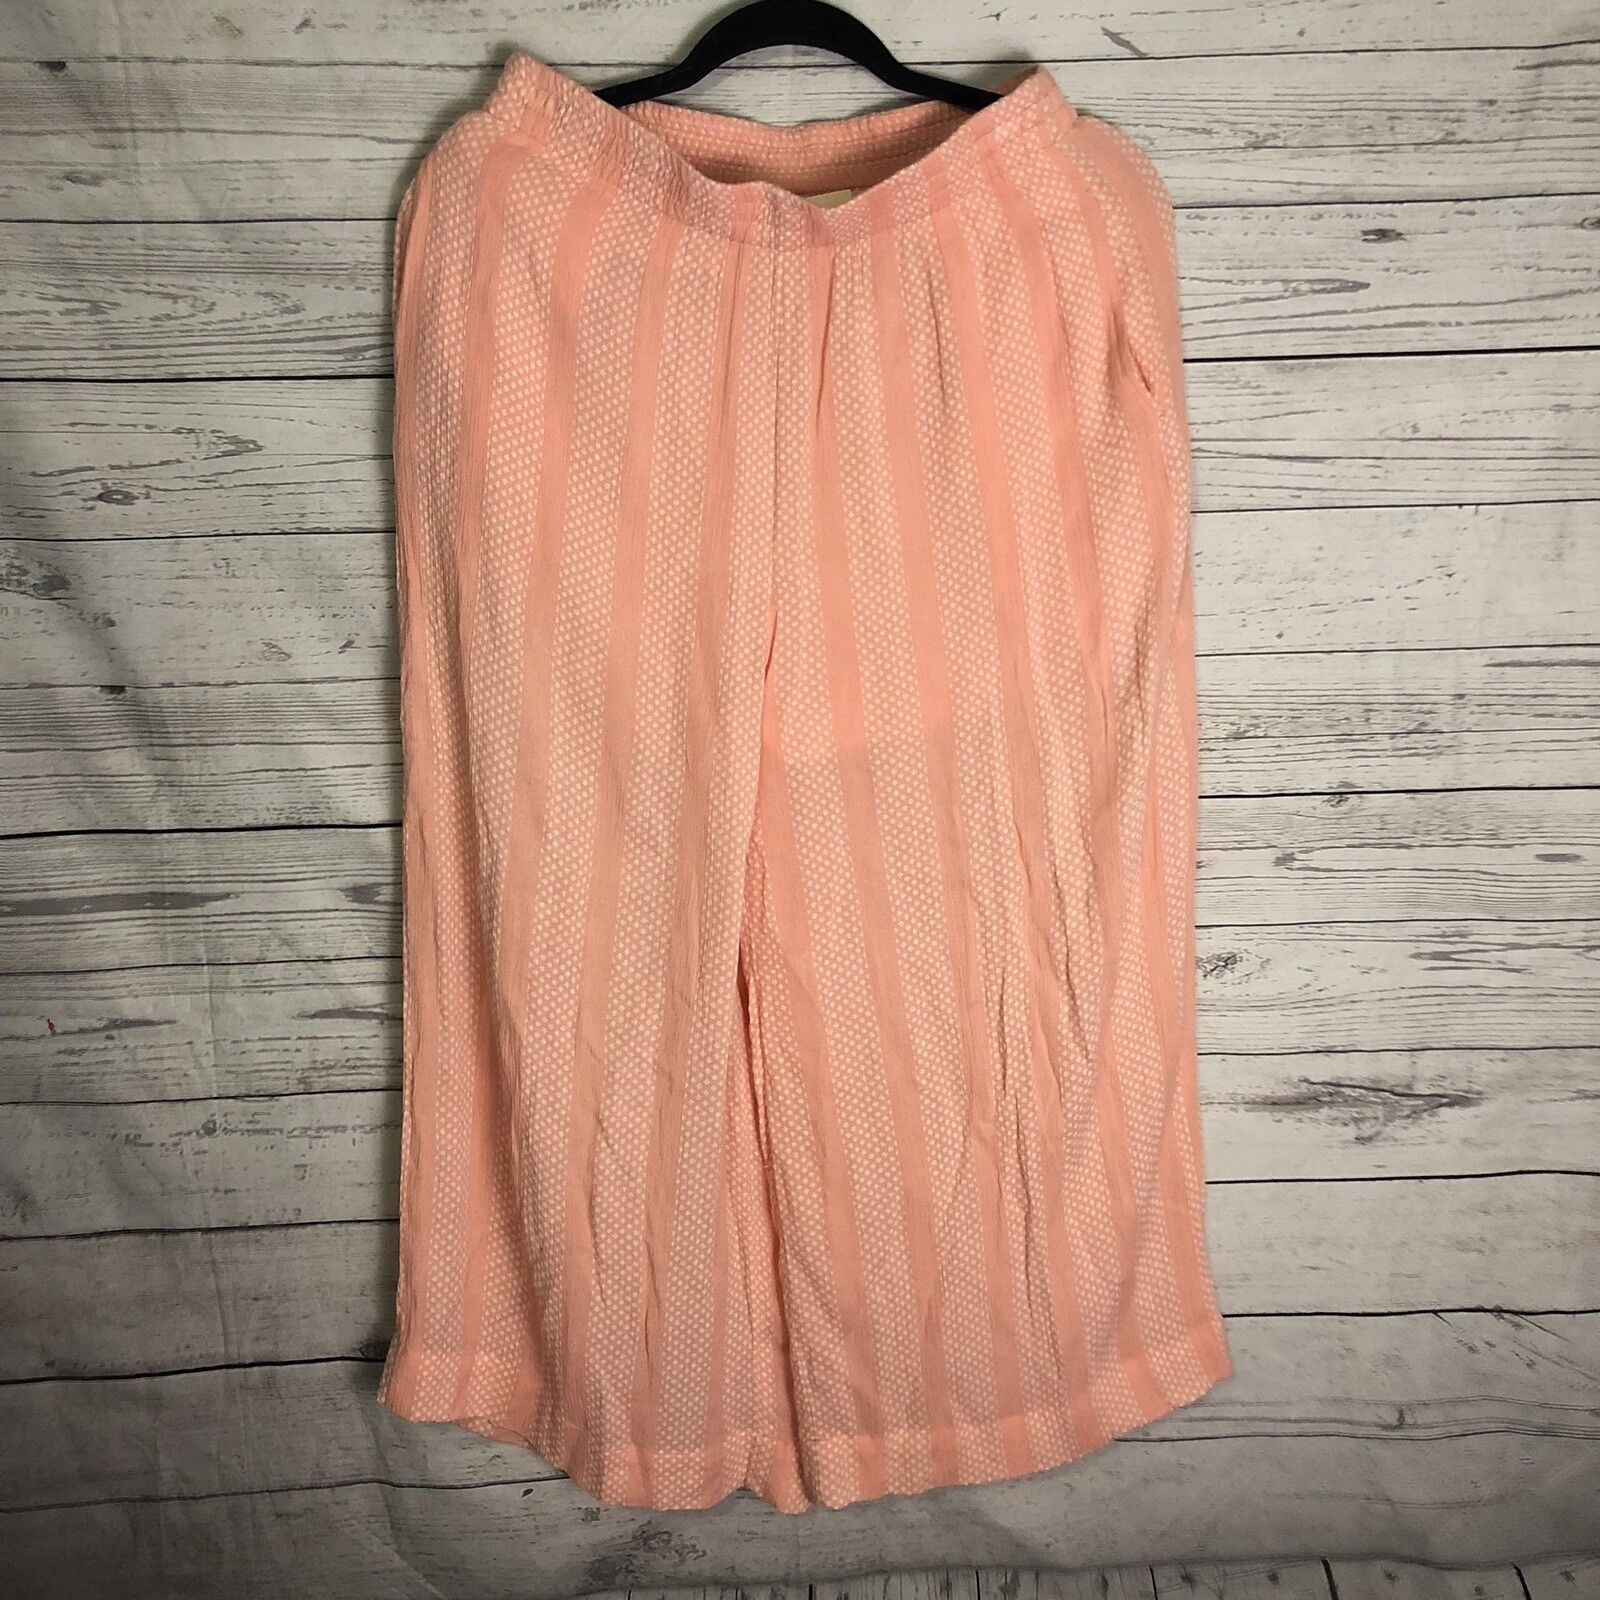 NWT NEW ANTHROPOLOGIE MAEVE NELL WIDE LEG CROP PANTS CULOTTES PINK pink S Small